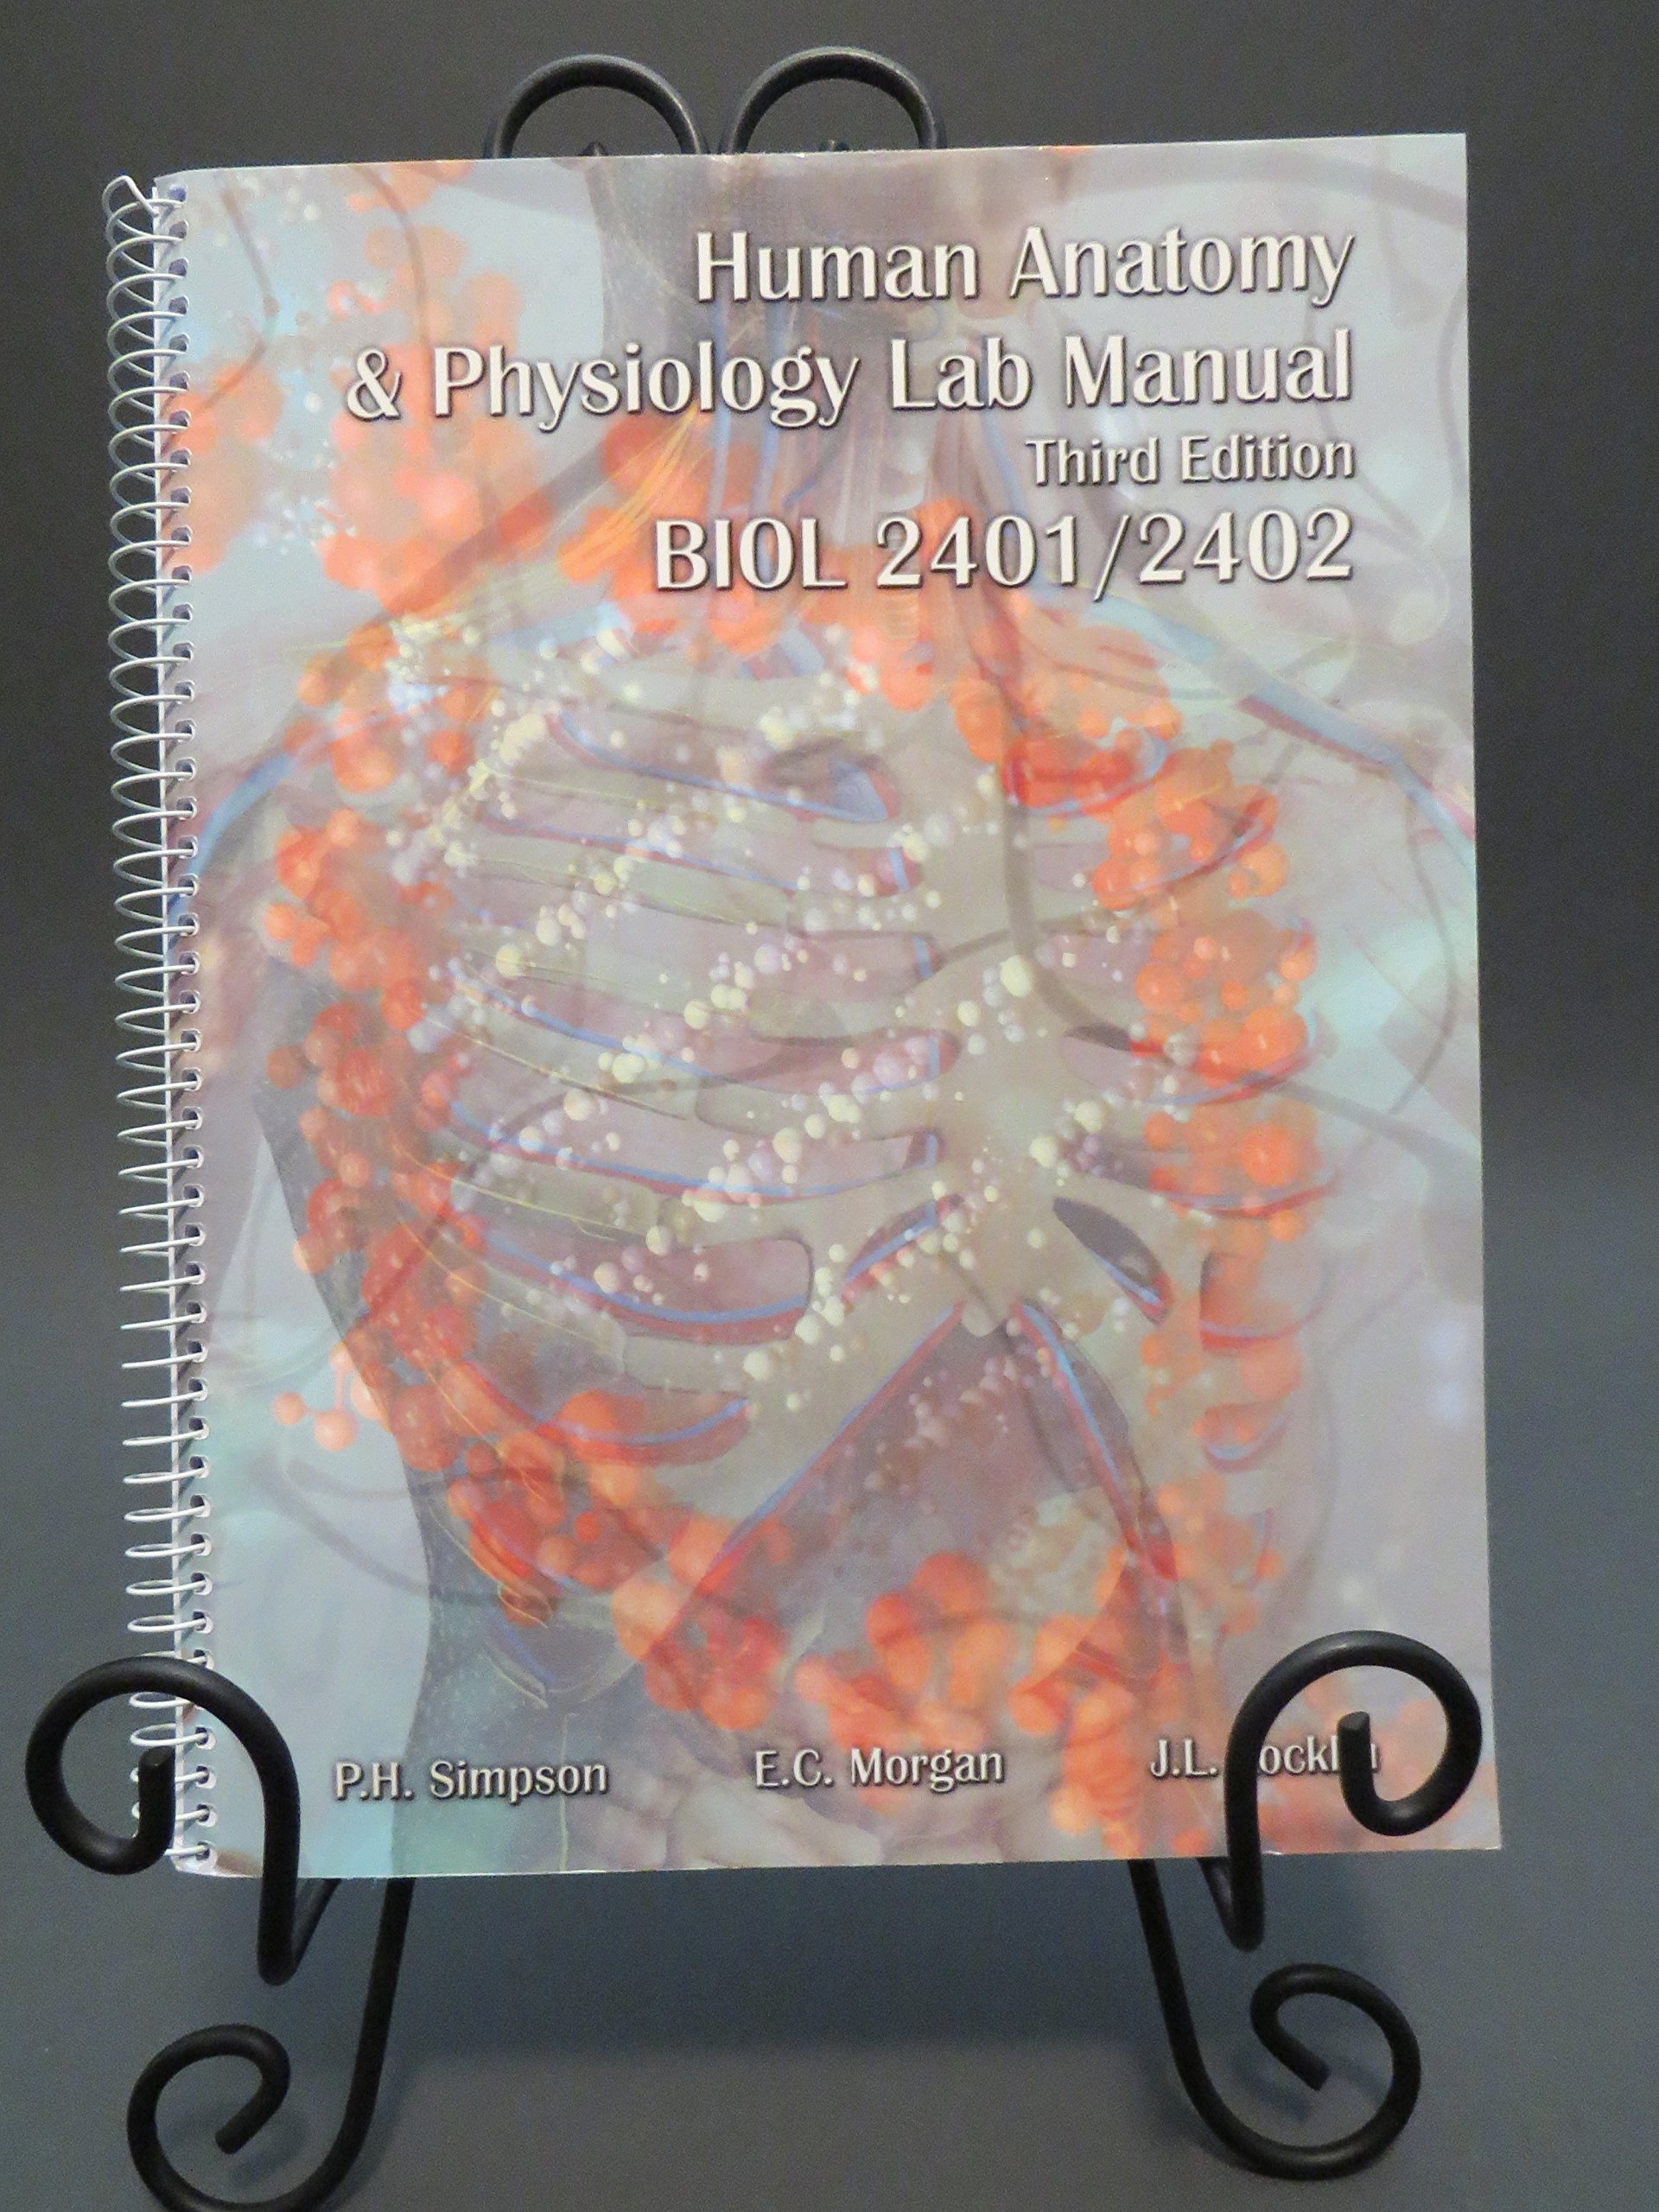 Human Anatomy & Physiology Lab Manual Third Edition BIOL 2401/2402 ...